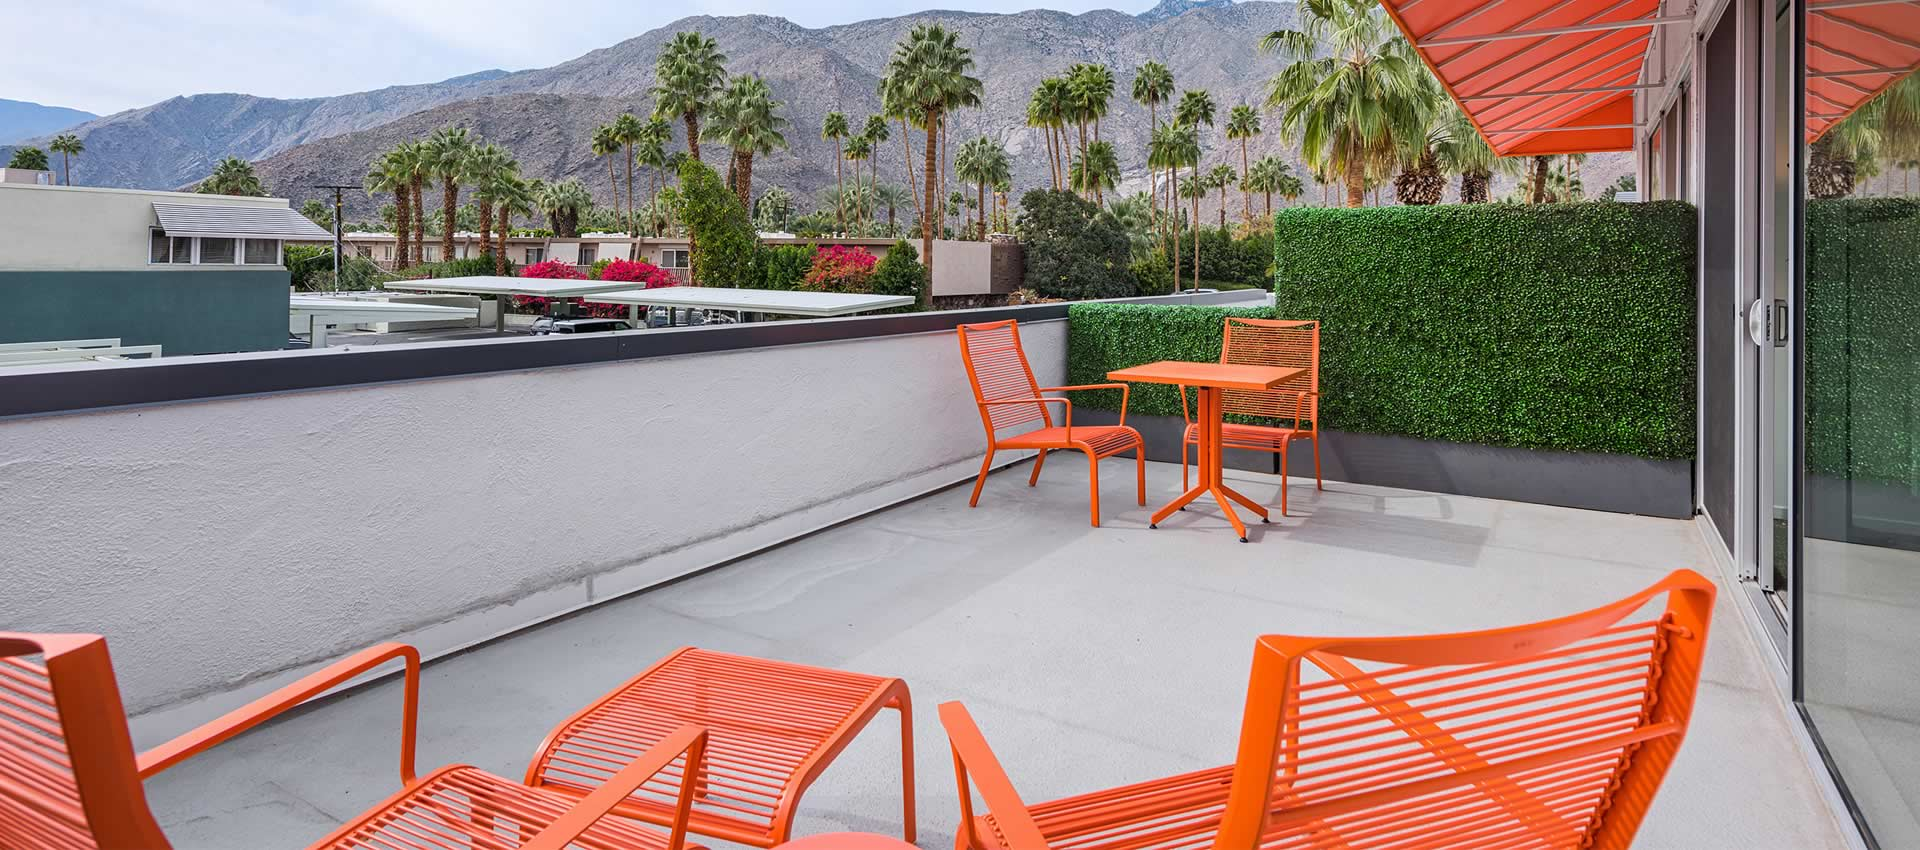 the patio of twist hotel room 221  with view on the mountains